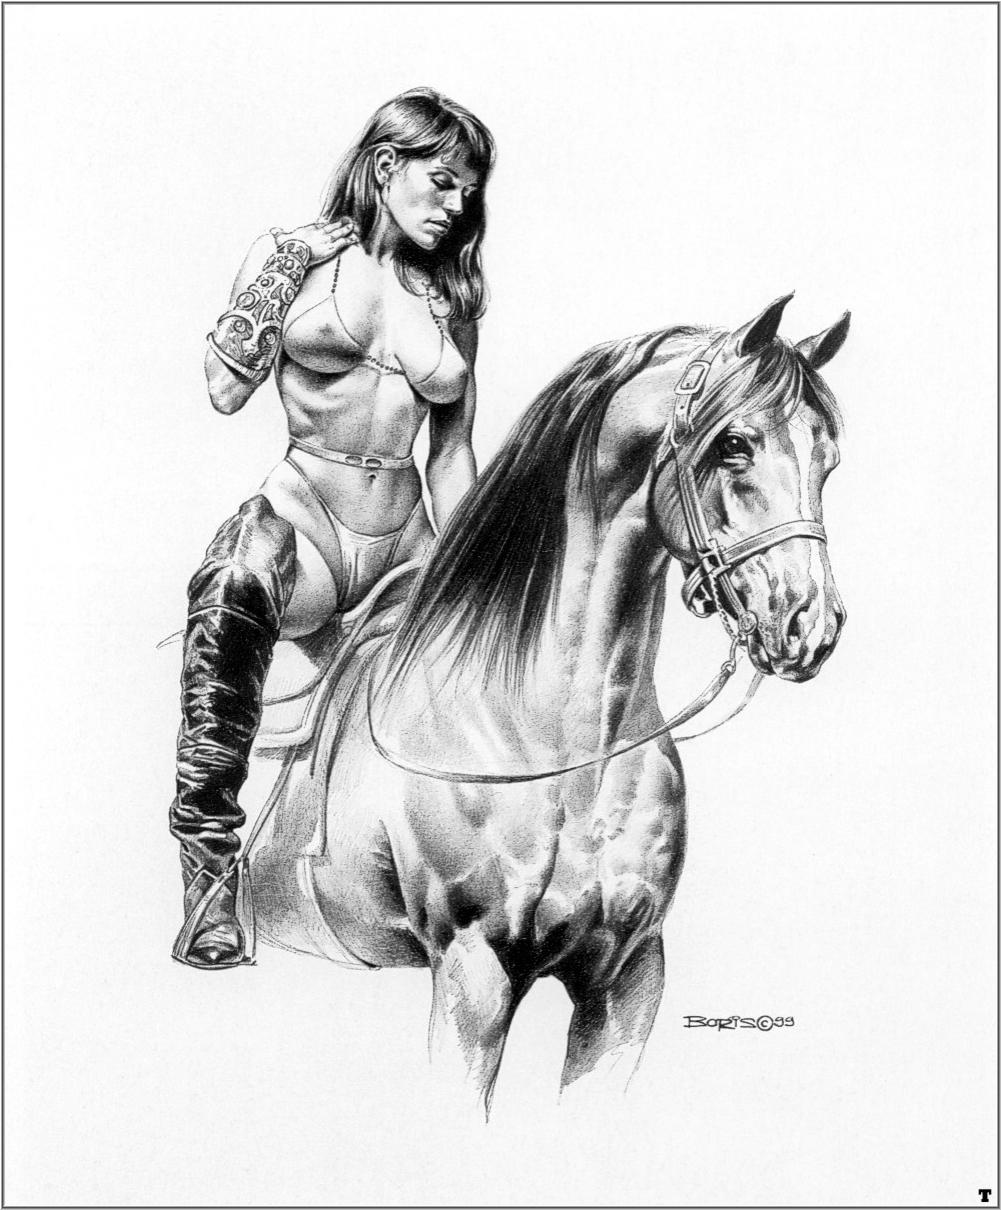 Black and white fantasy sex drawings sexy comic